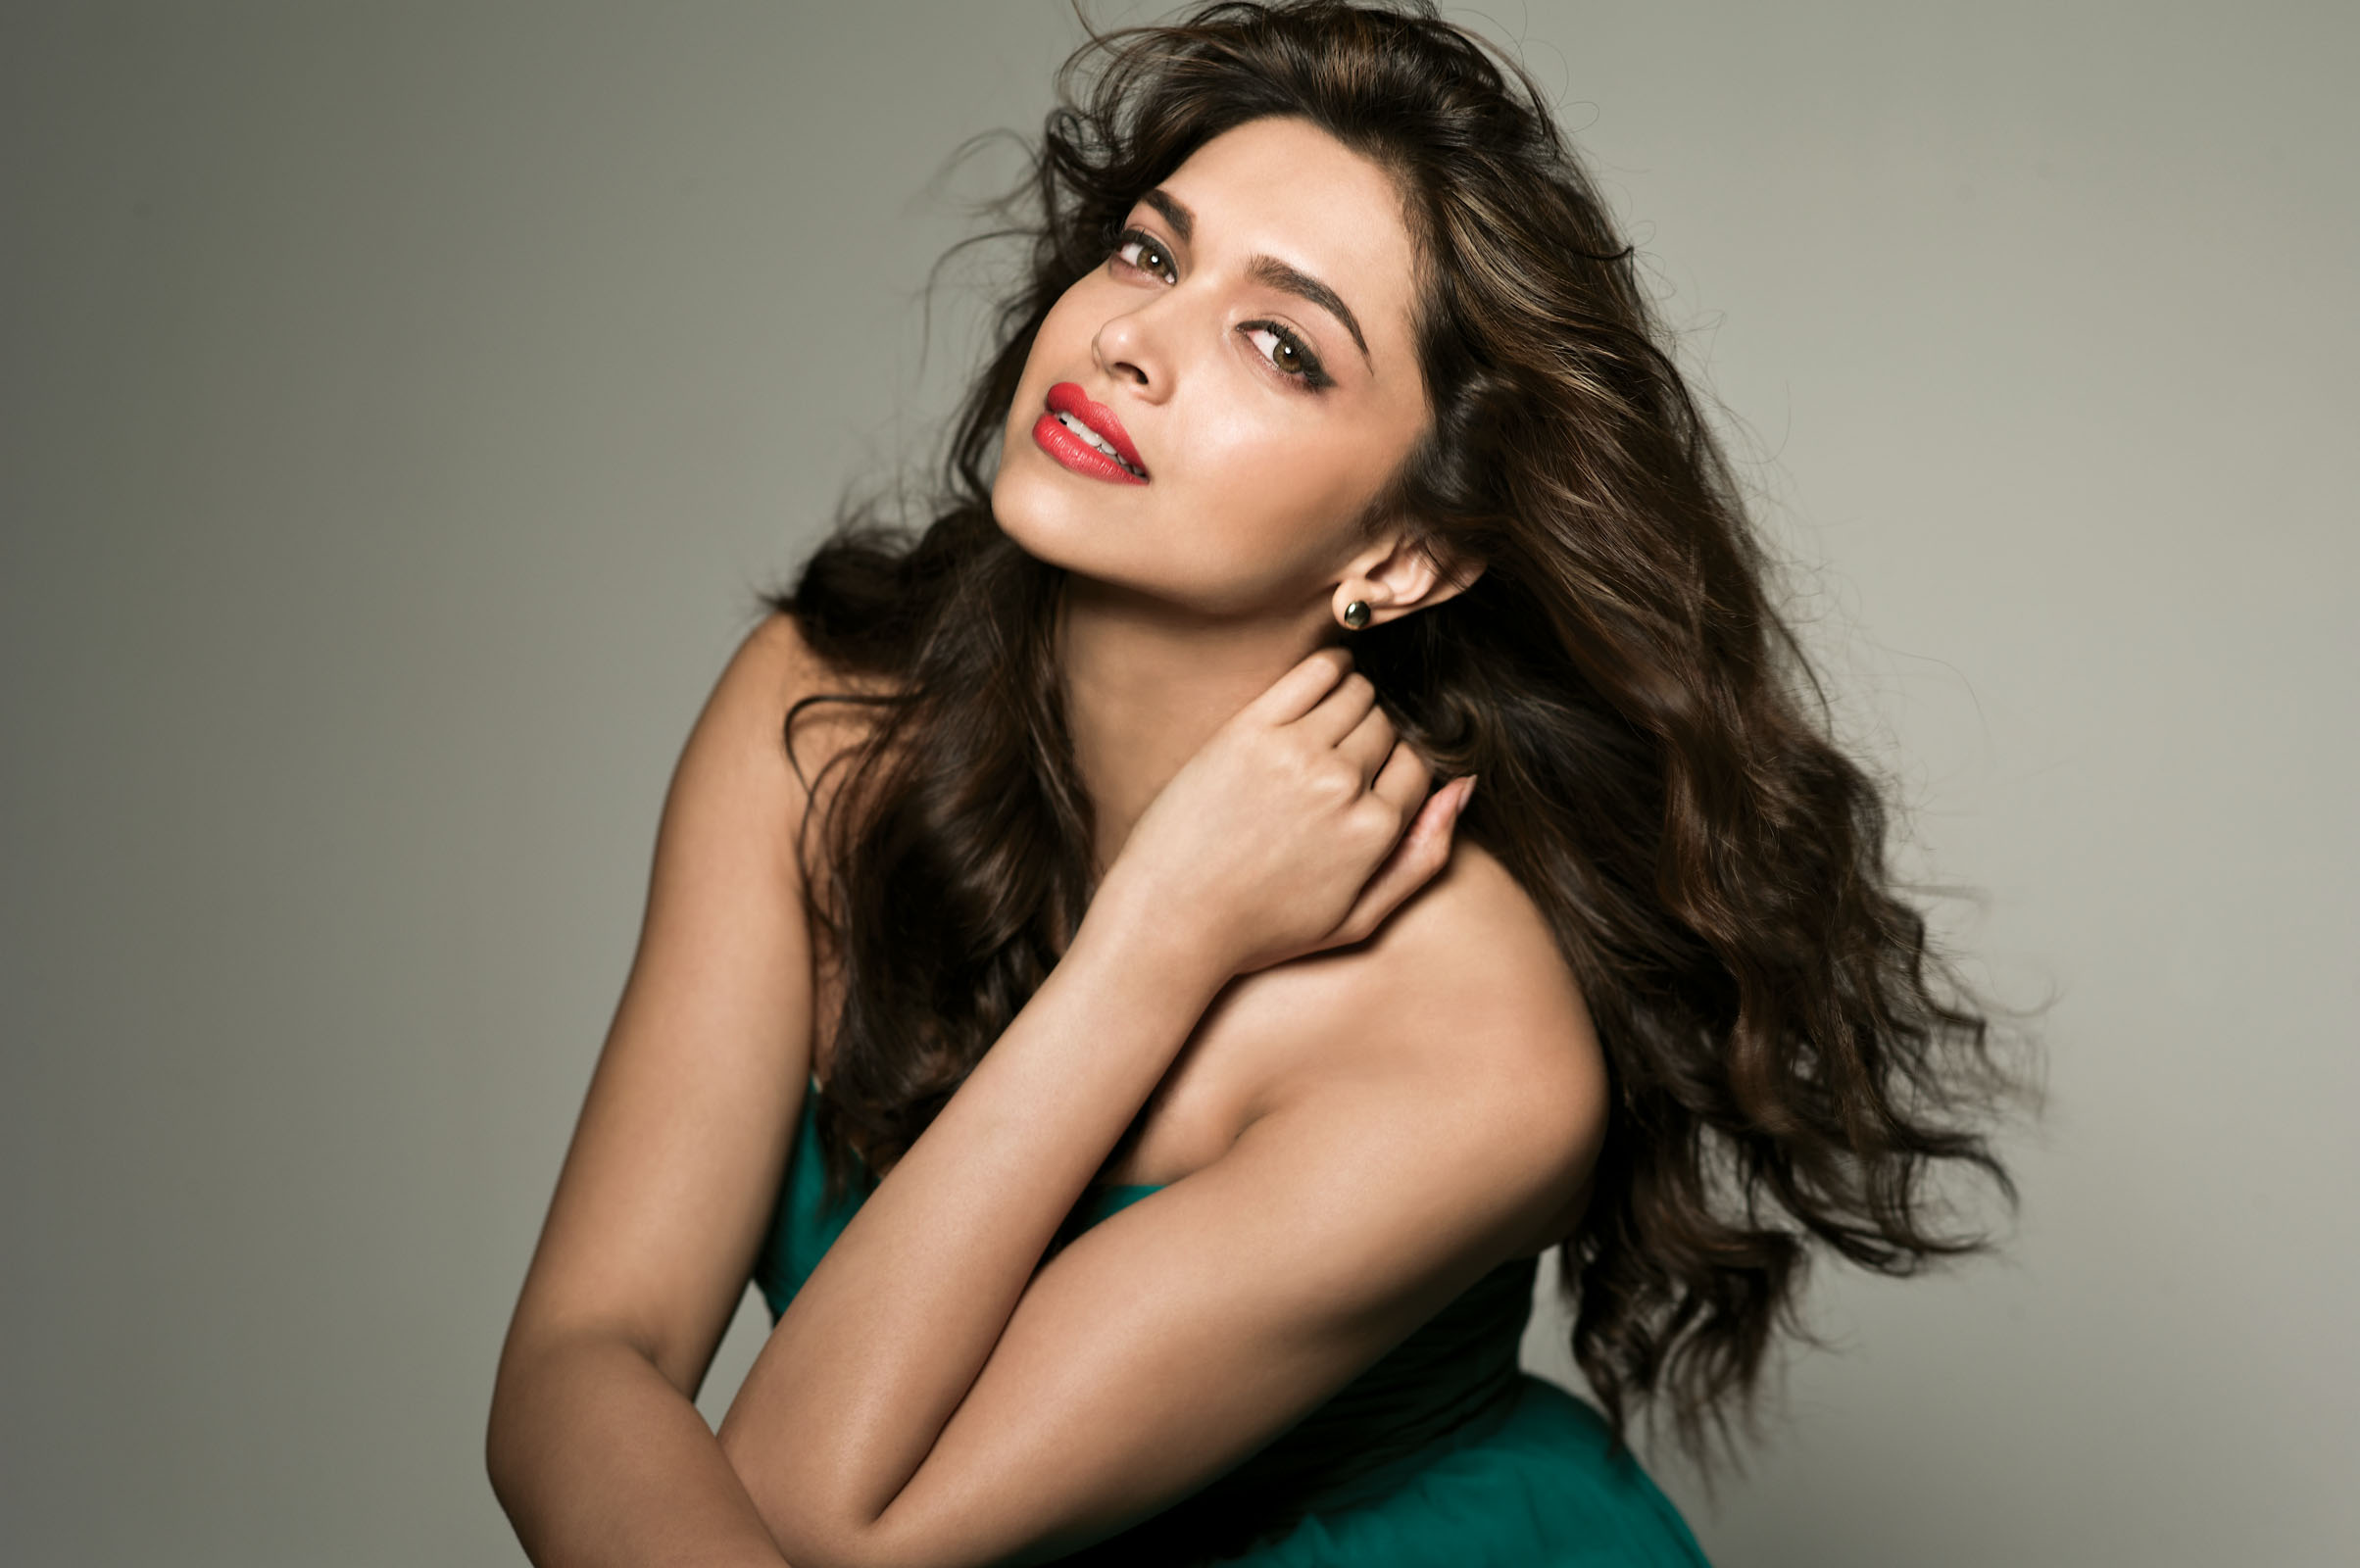 Deepika Padukone Wallpaper in HD